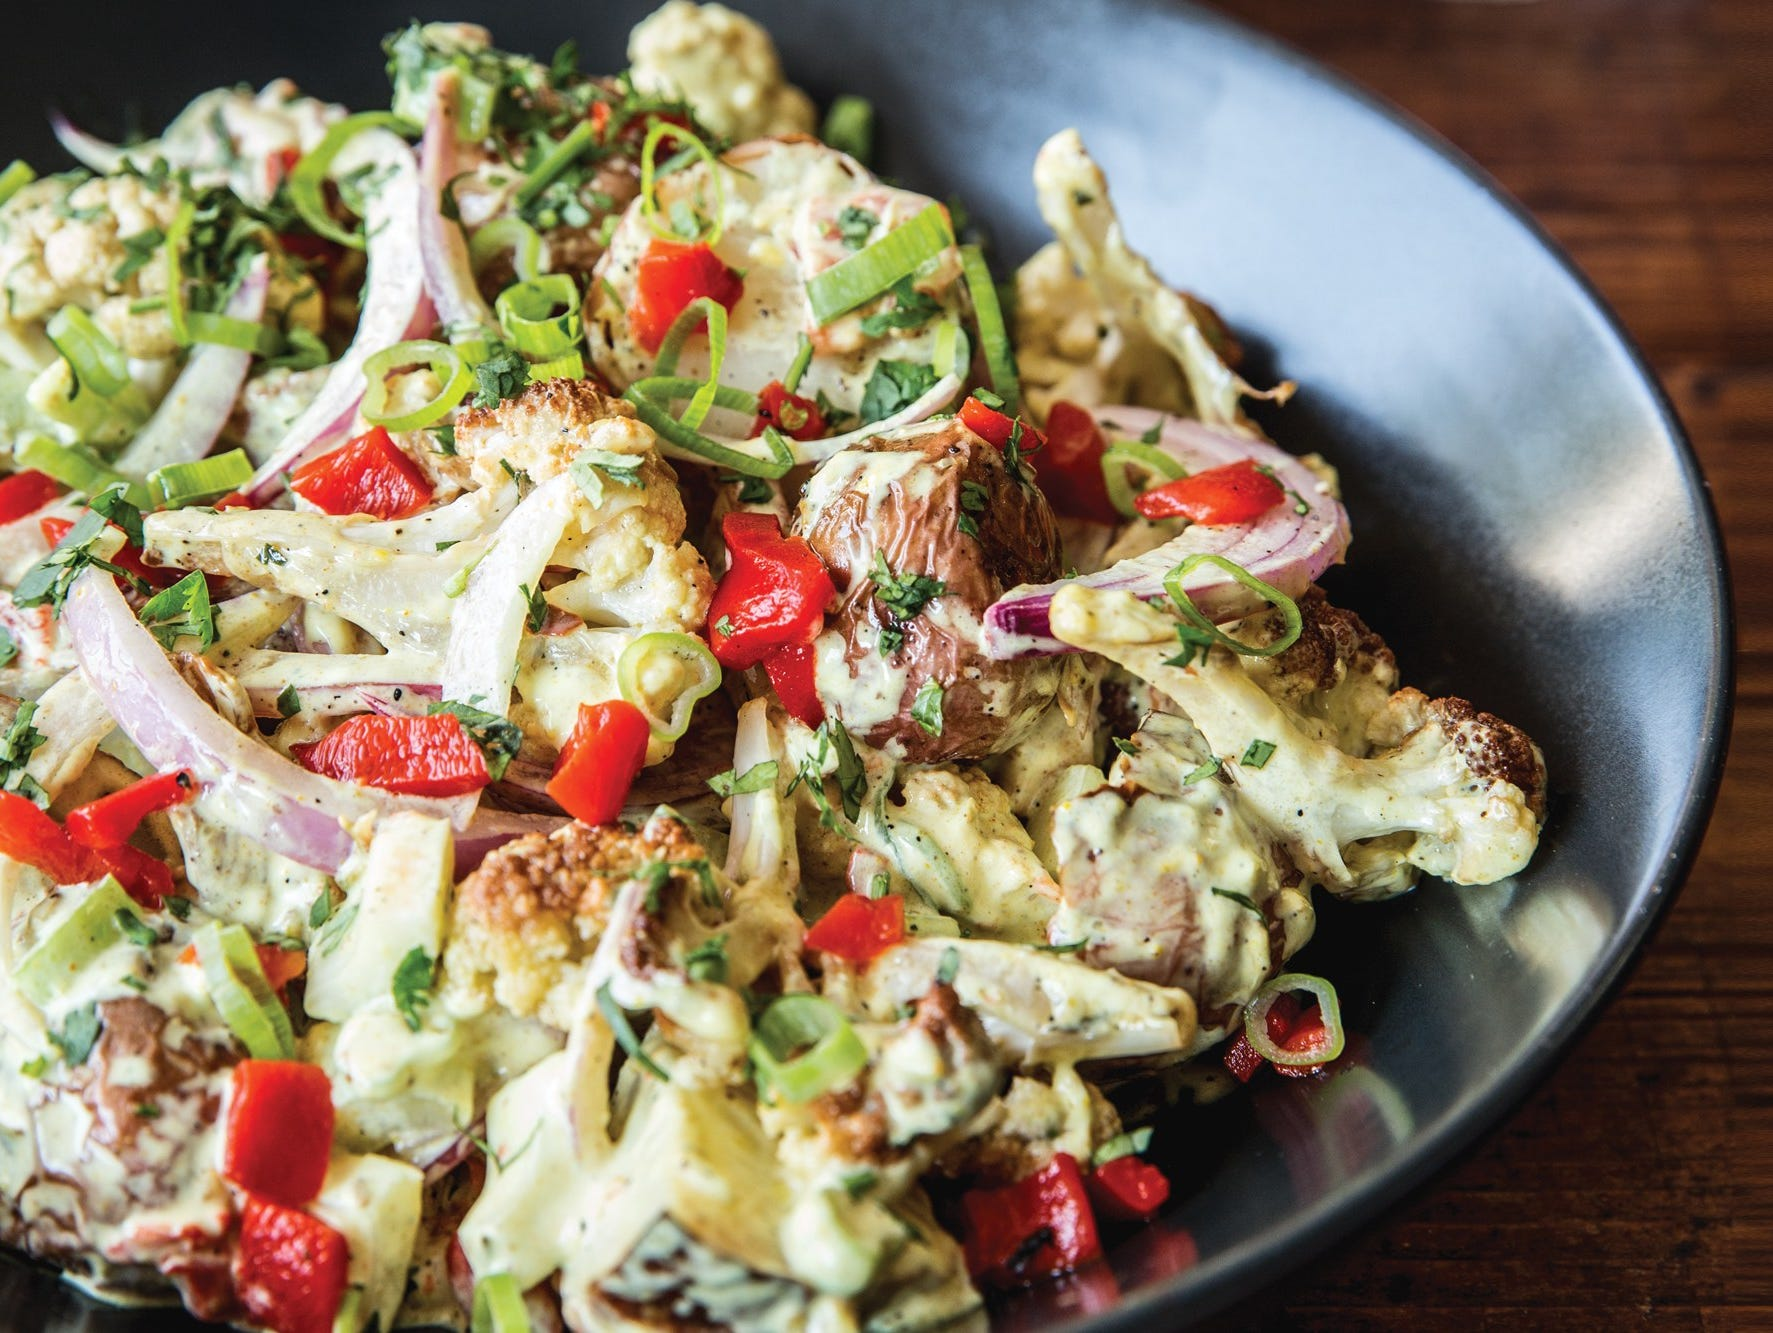 Enjoy this flavorful Curried Cauliflower & Potato Salad recipe designed by Guy Fieri!